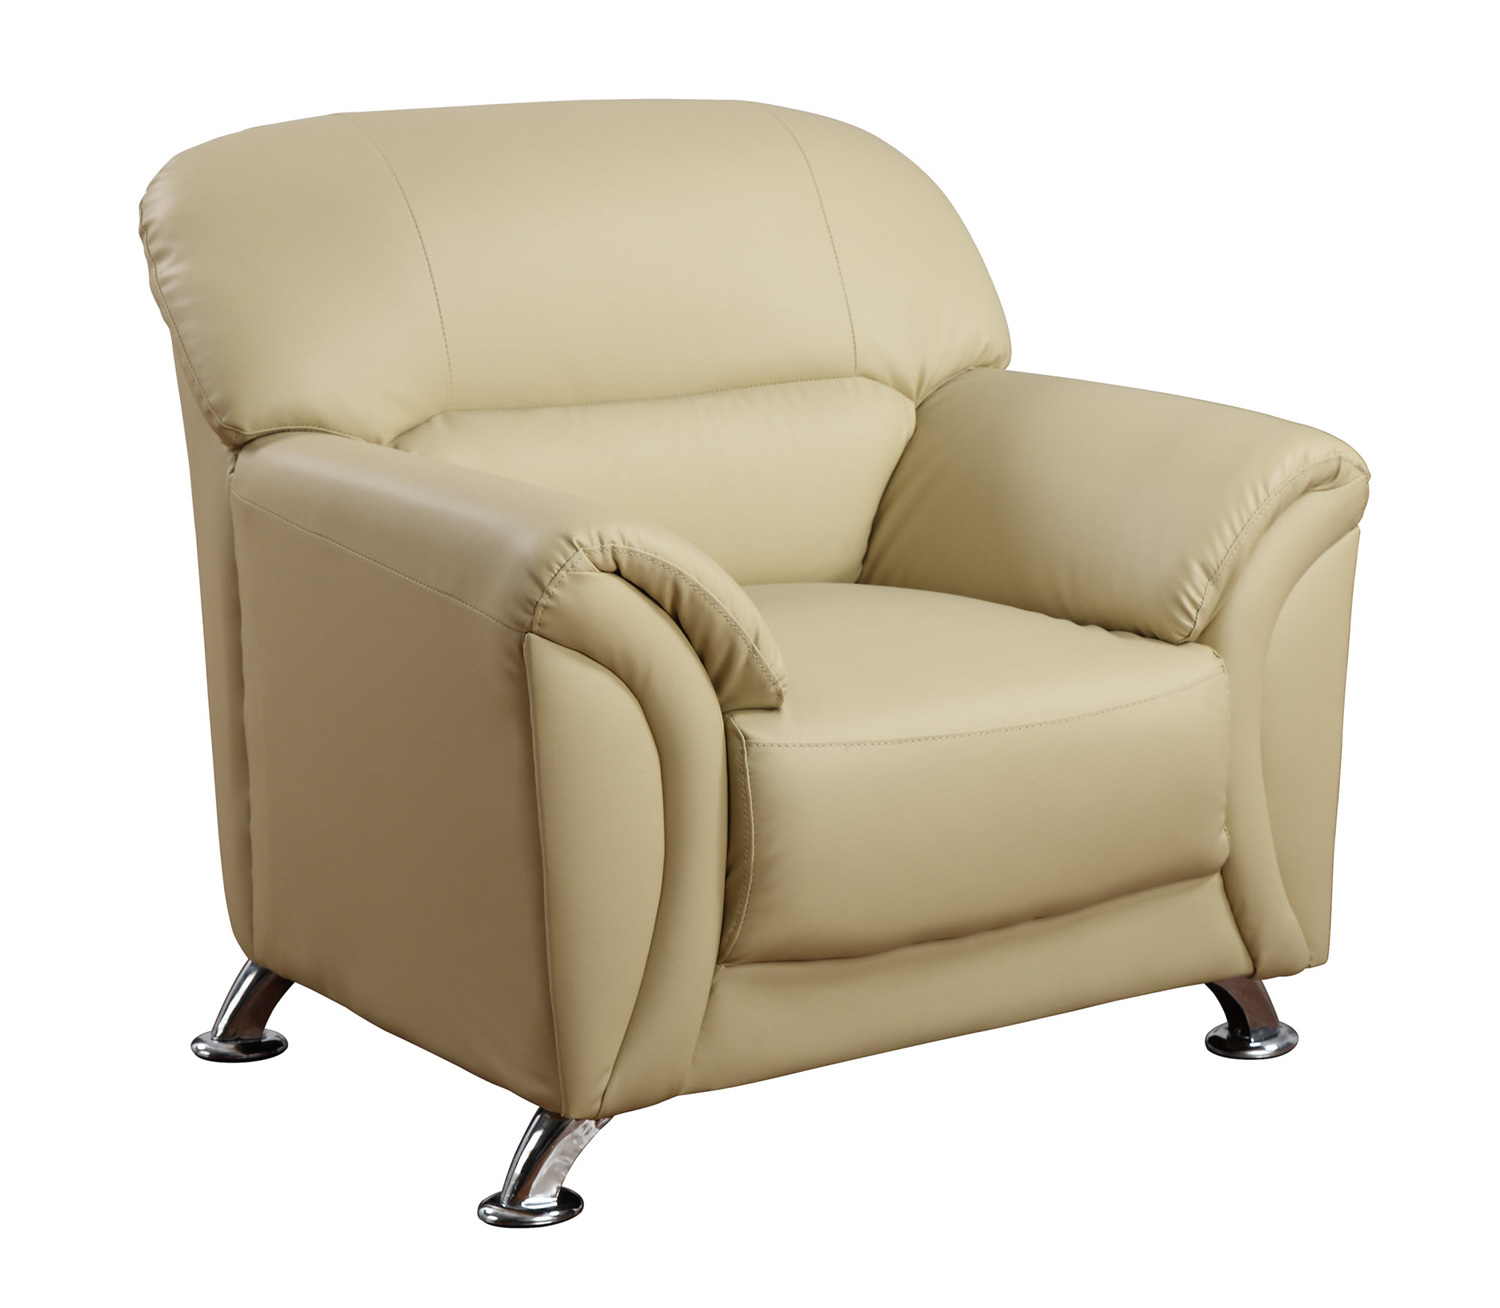 Chair   Global   Home Gallery Stores